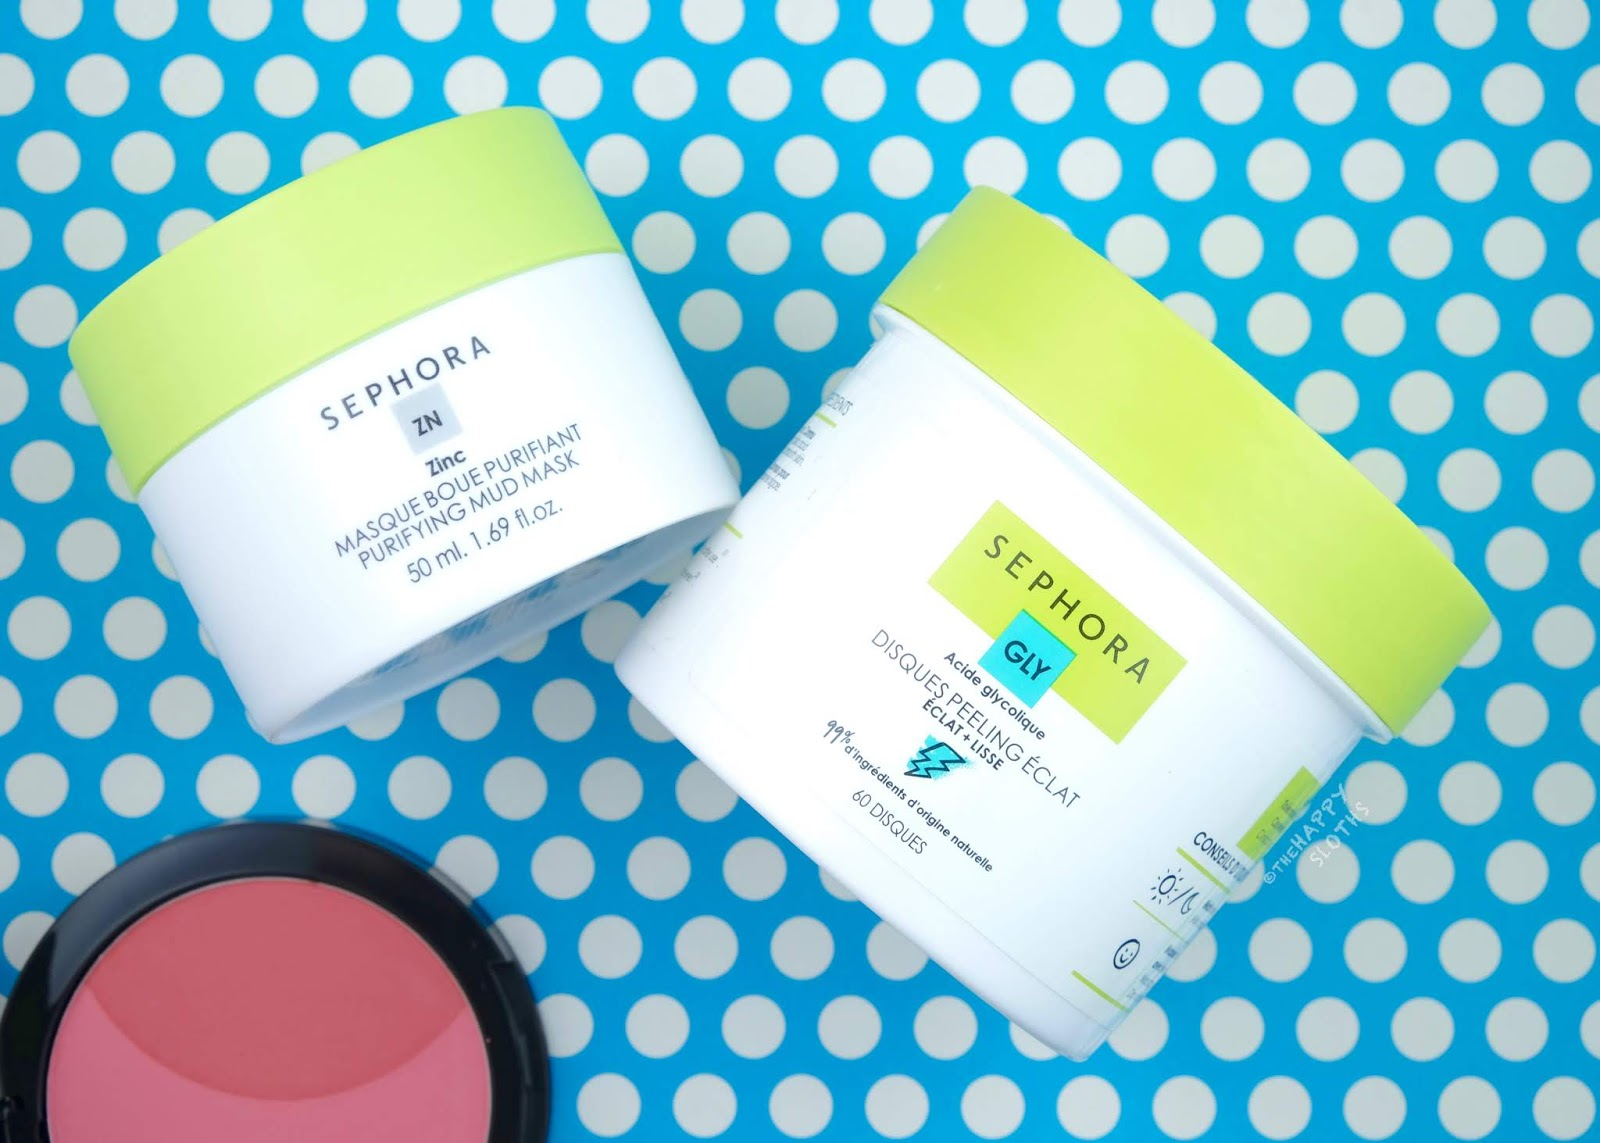 Sephora Collection | Purifying Mud Mask & Glow Peel Pads: Review and Swatches